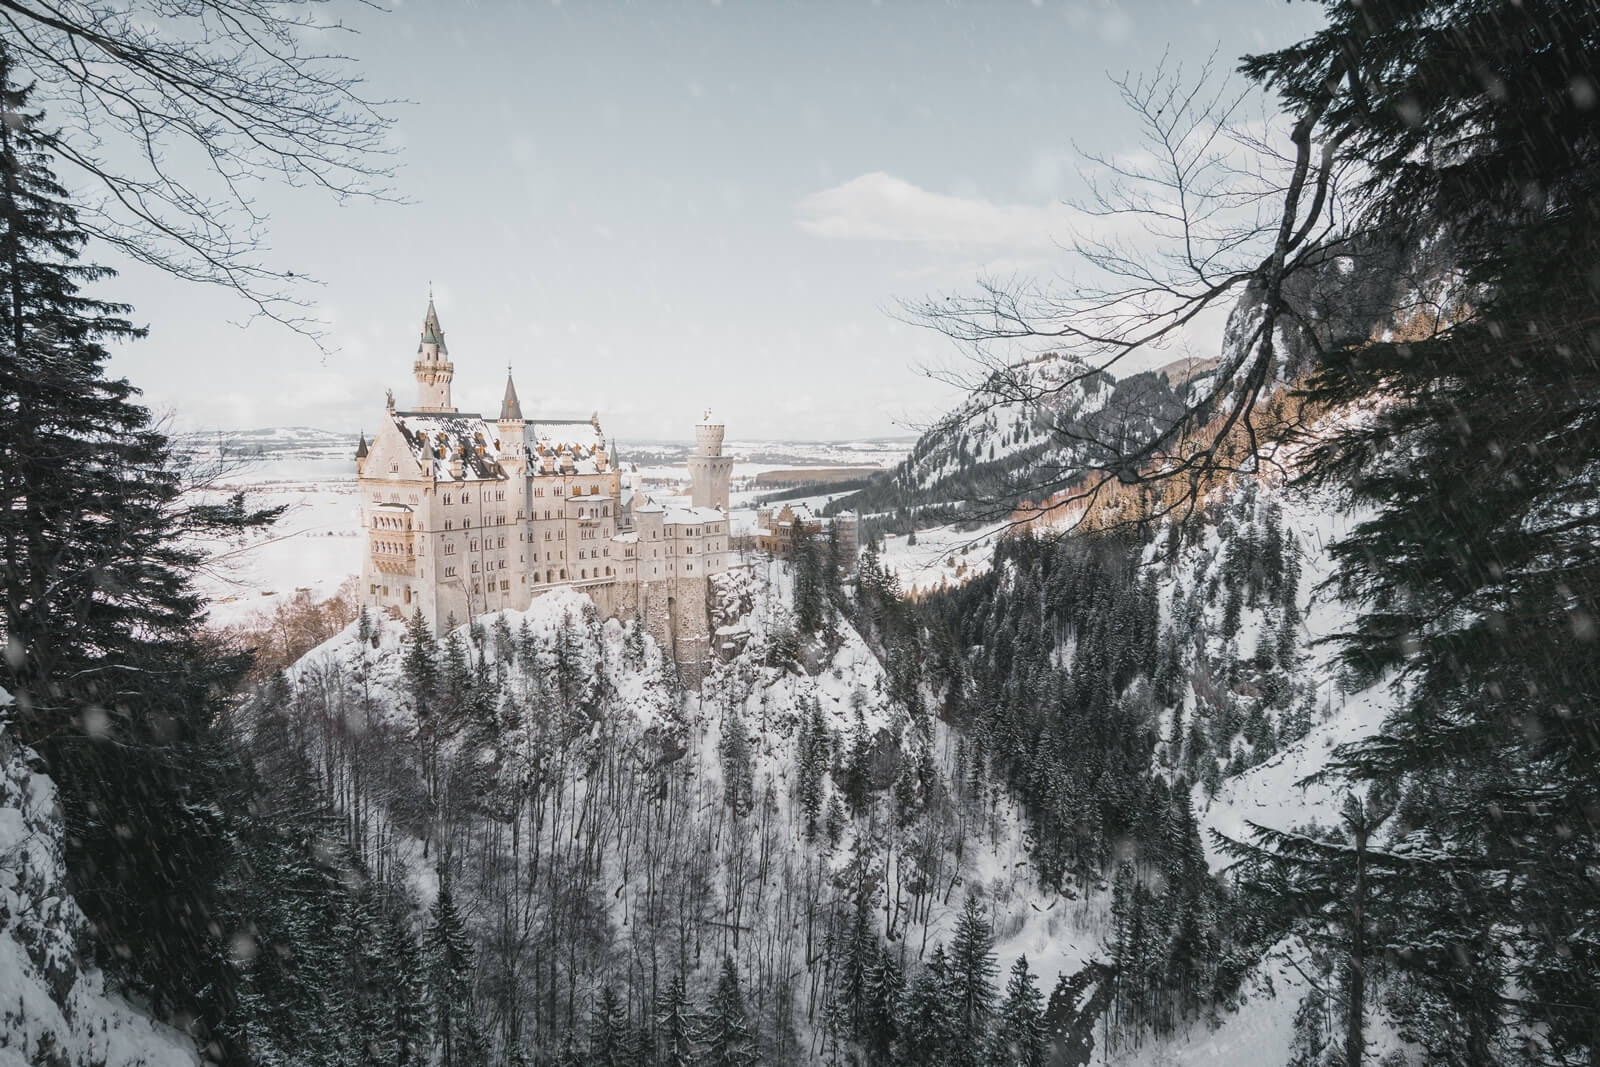 neuschwanstein-castle-fussen-bavaria-germany-la-vie-en-blog3